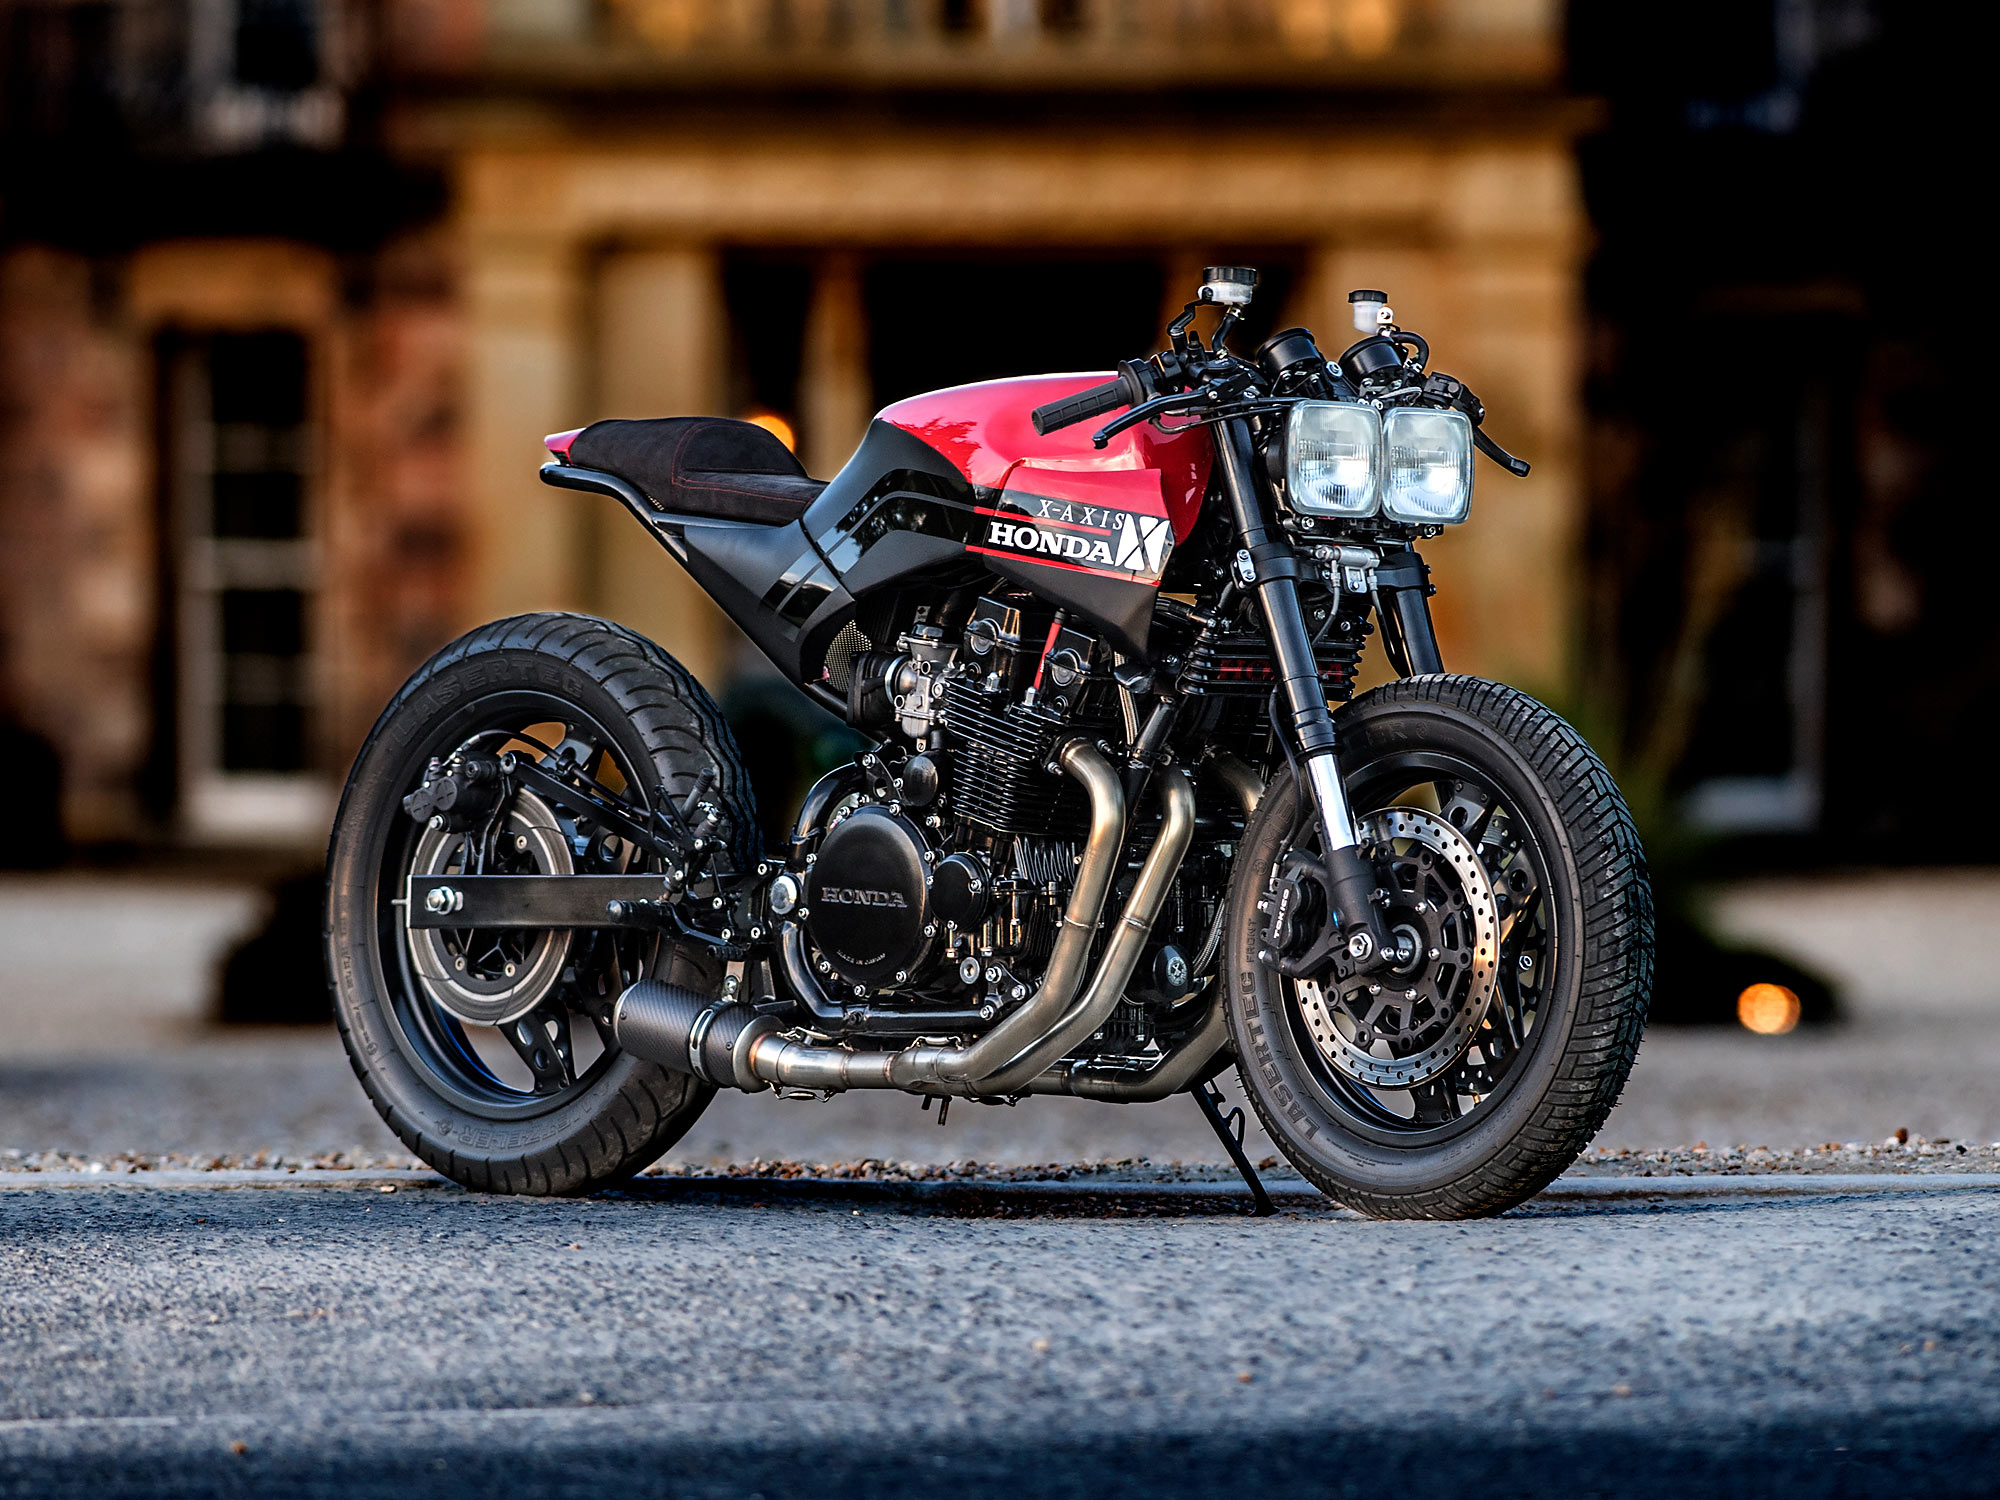 a honda cbx750 cafe racer from x-axis